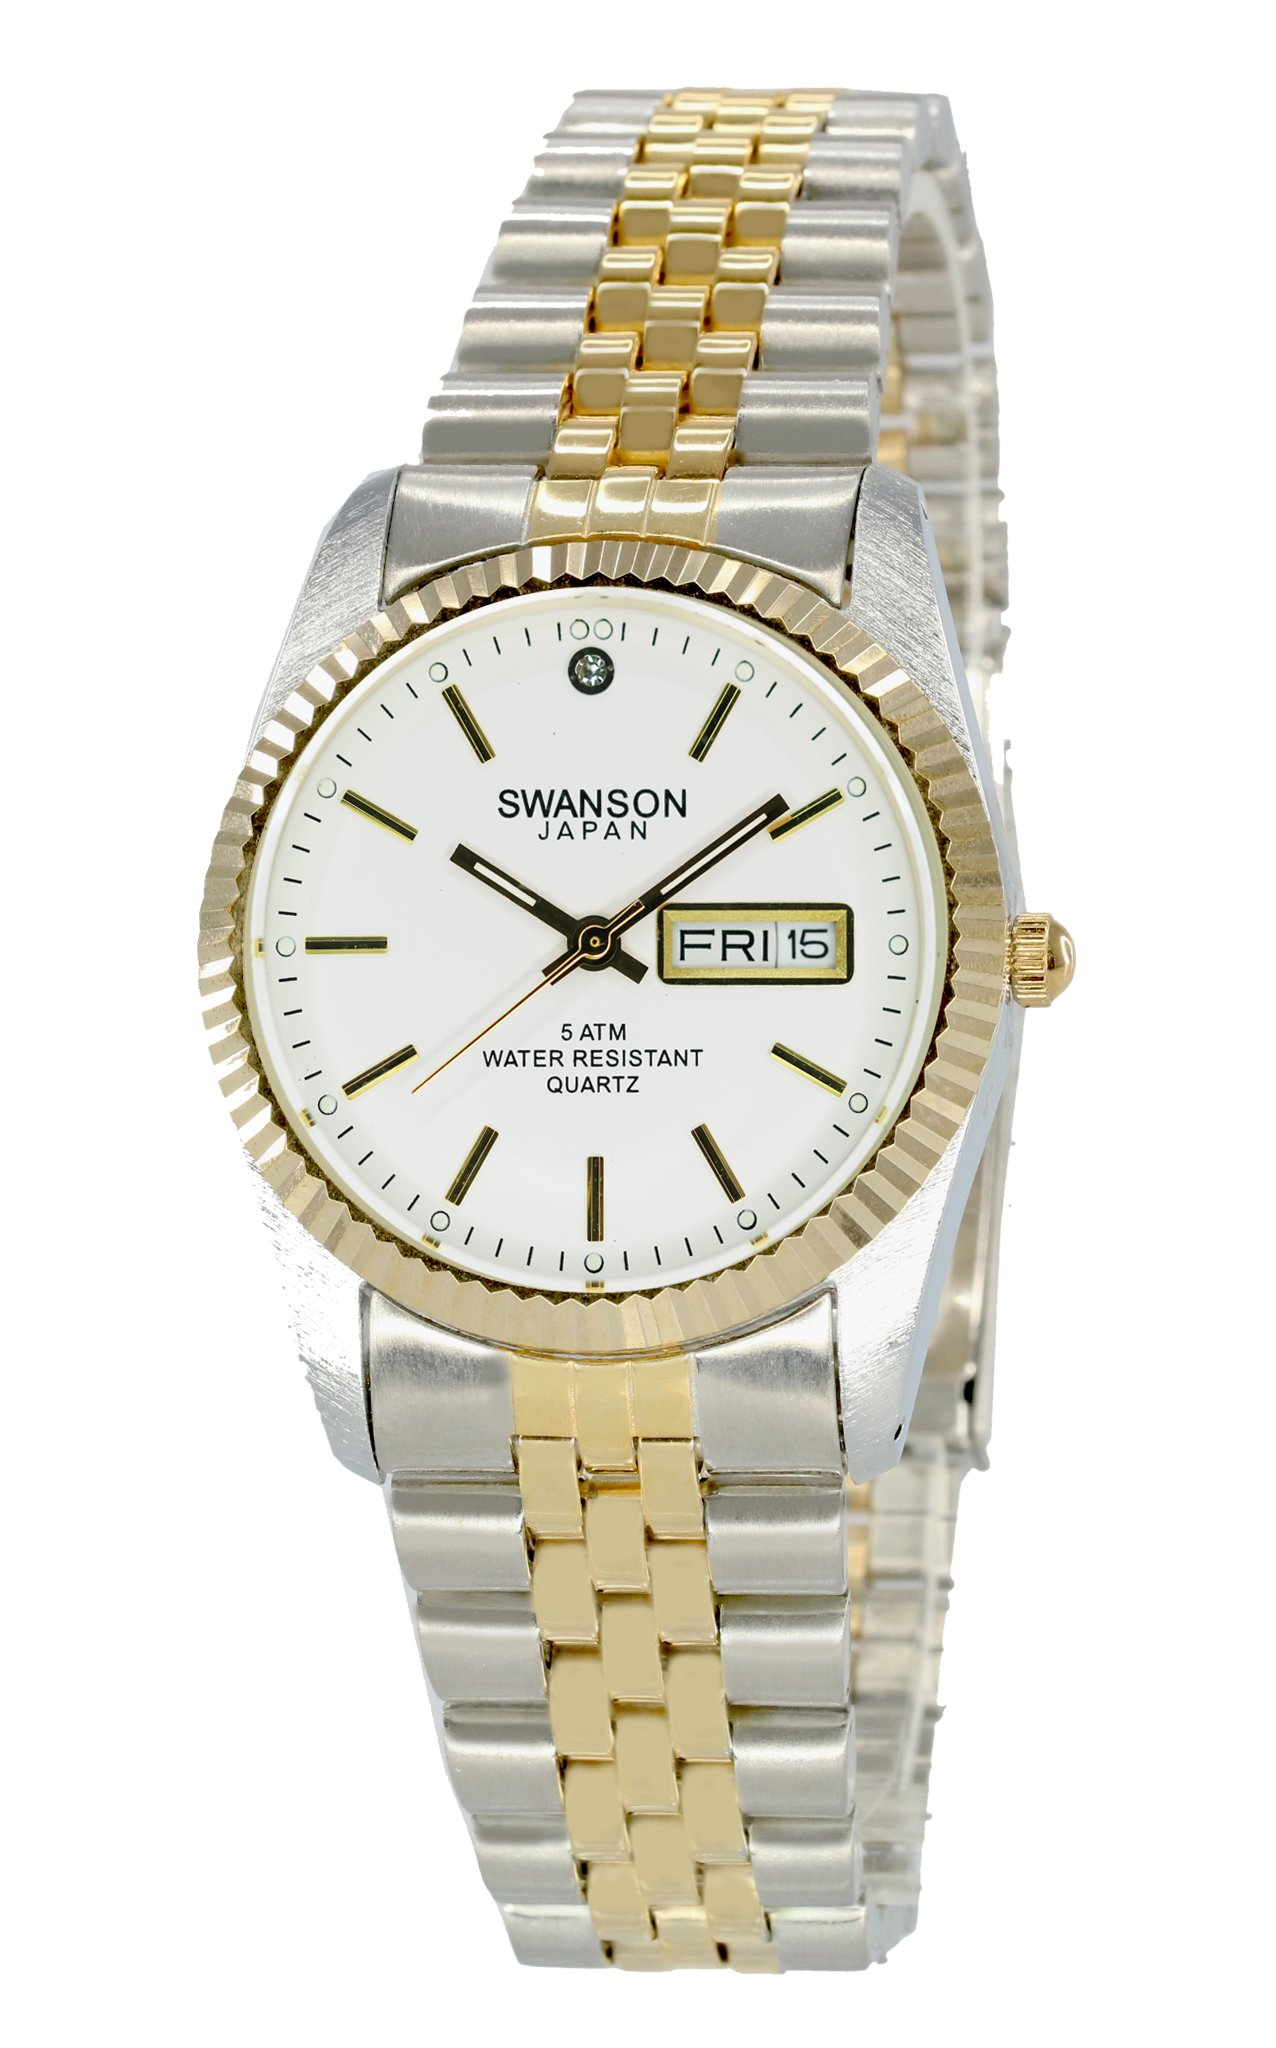 Swanson Japan Men's Two-Tone Day-Date Watch White Dial with Travel Case